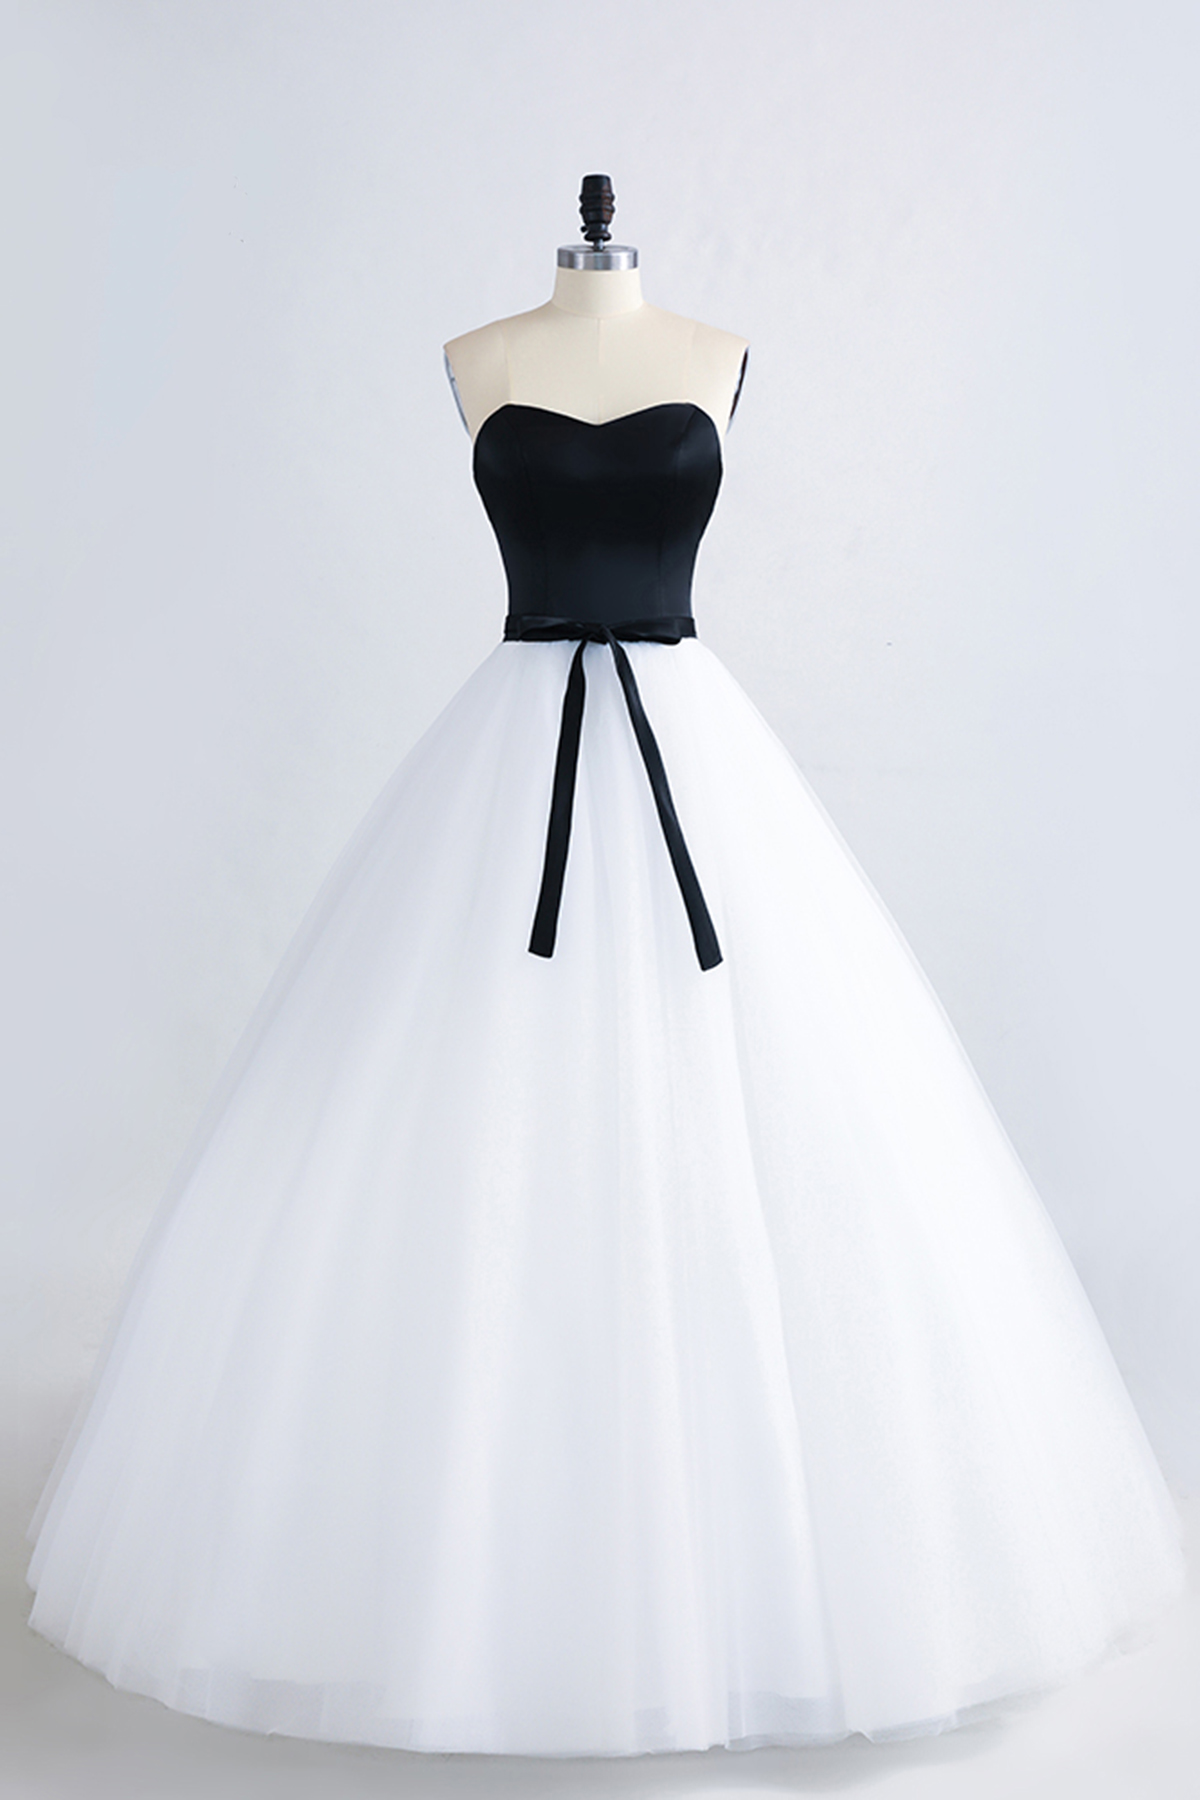 Unique sweetheart black long white tulle prom dress simple lace up unique sweetheart black long white tulle prom dress simple lace up bridesmaid dress ombrellifo Choice Image